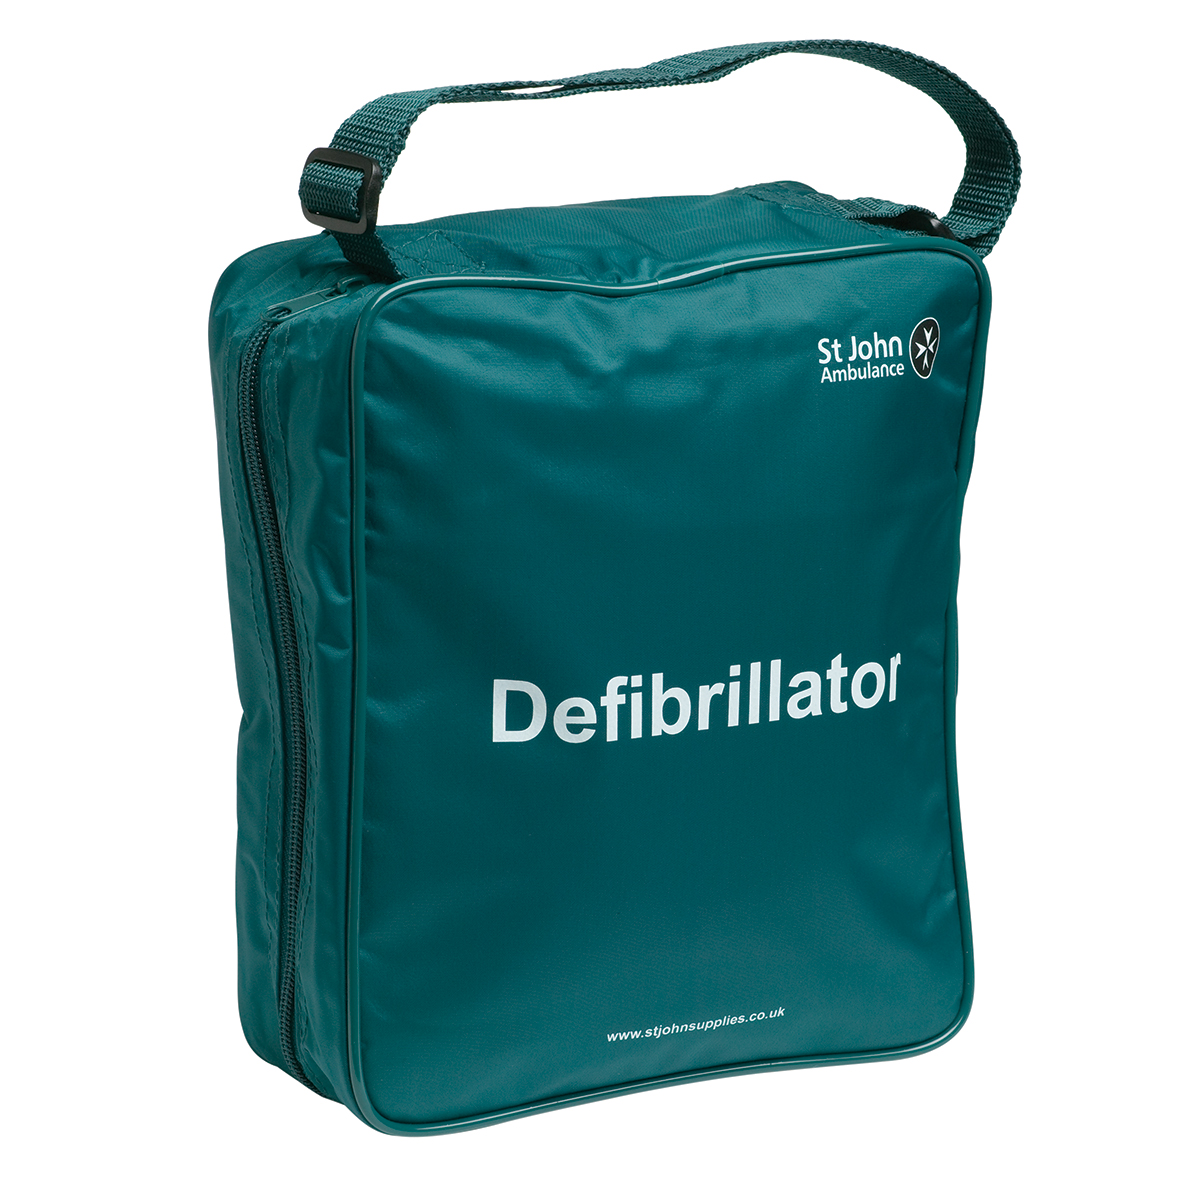 St John Ambulance Soft Defibrillator Carry Case